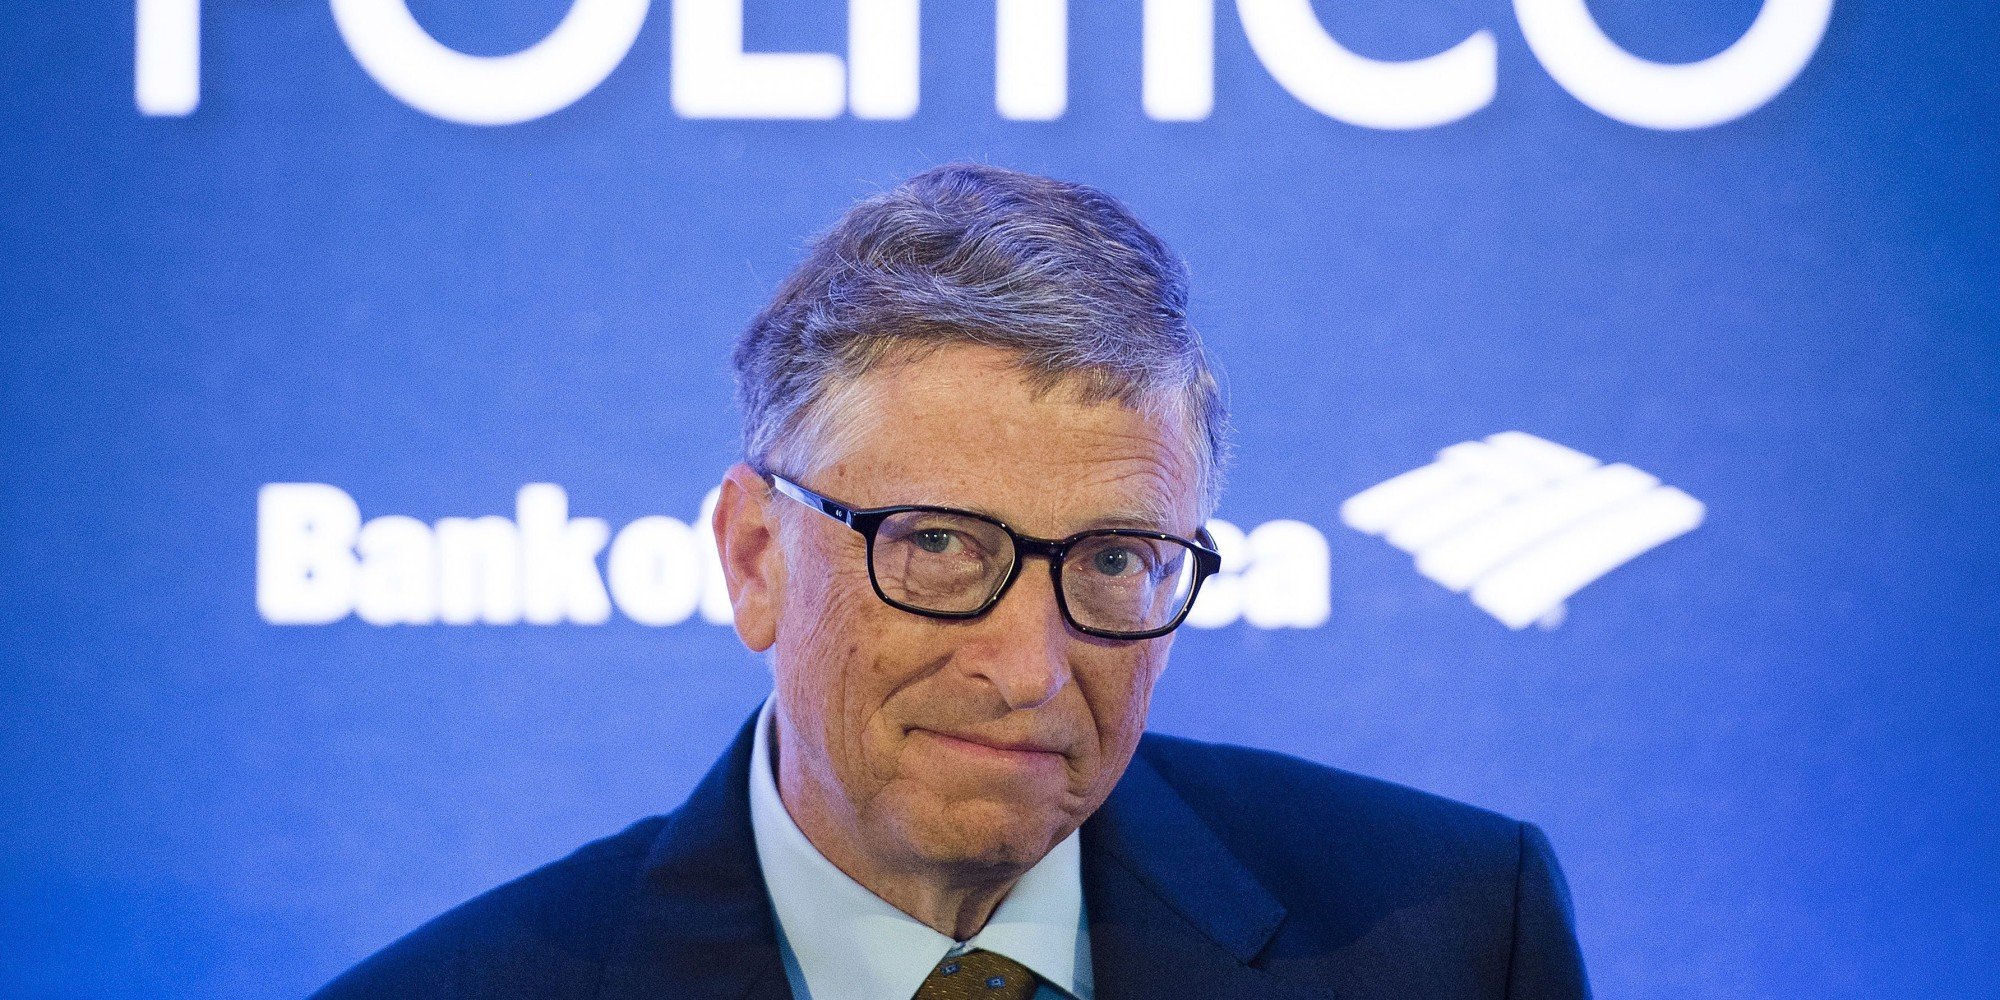 leadership qualities of bill gates Essays on leadership qualities patwell january 15, 2017, bill gates philanthropy, gwyneth paltrow, motivate, essays how to be a point a matter of subject areas.